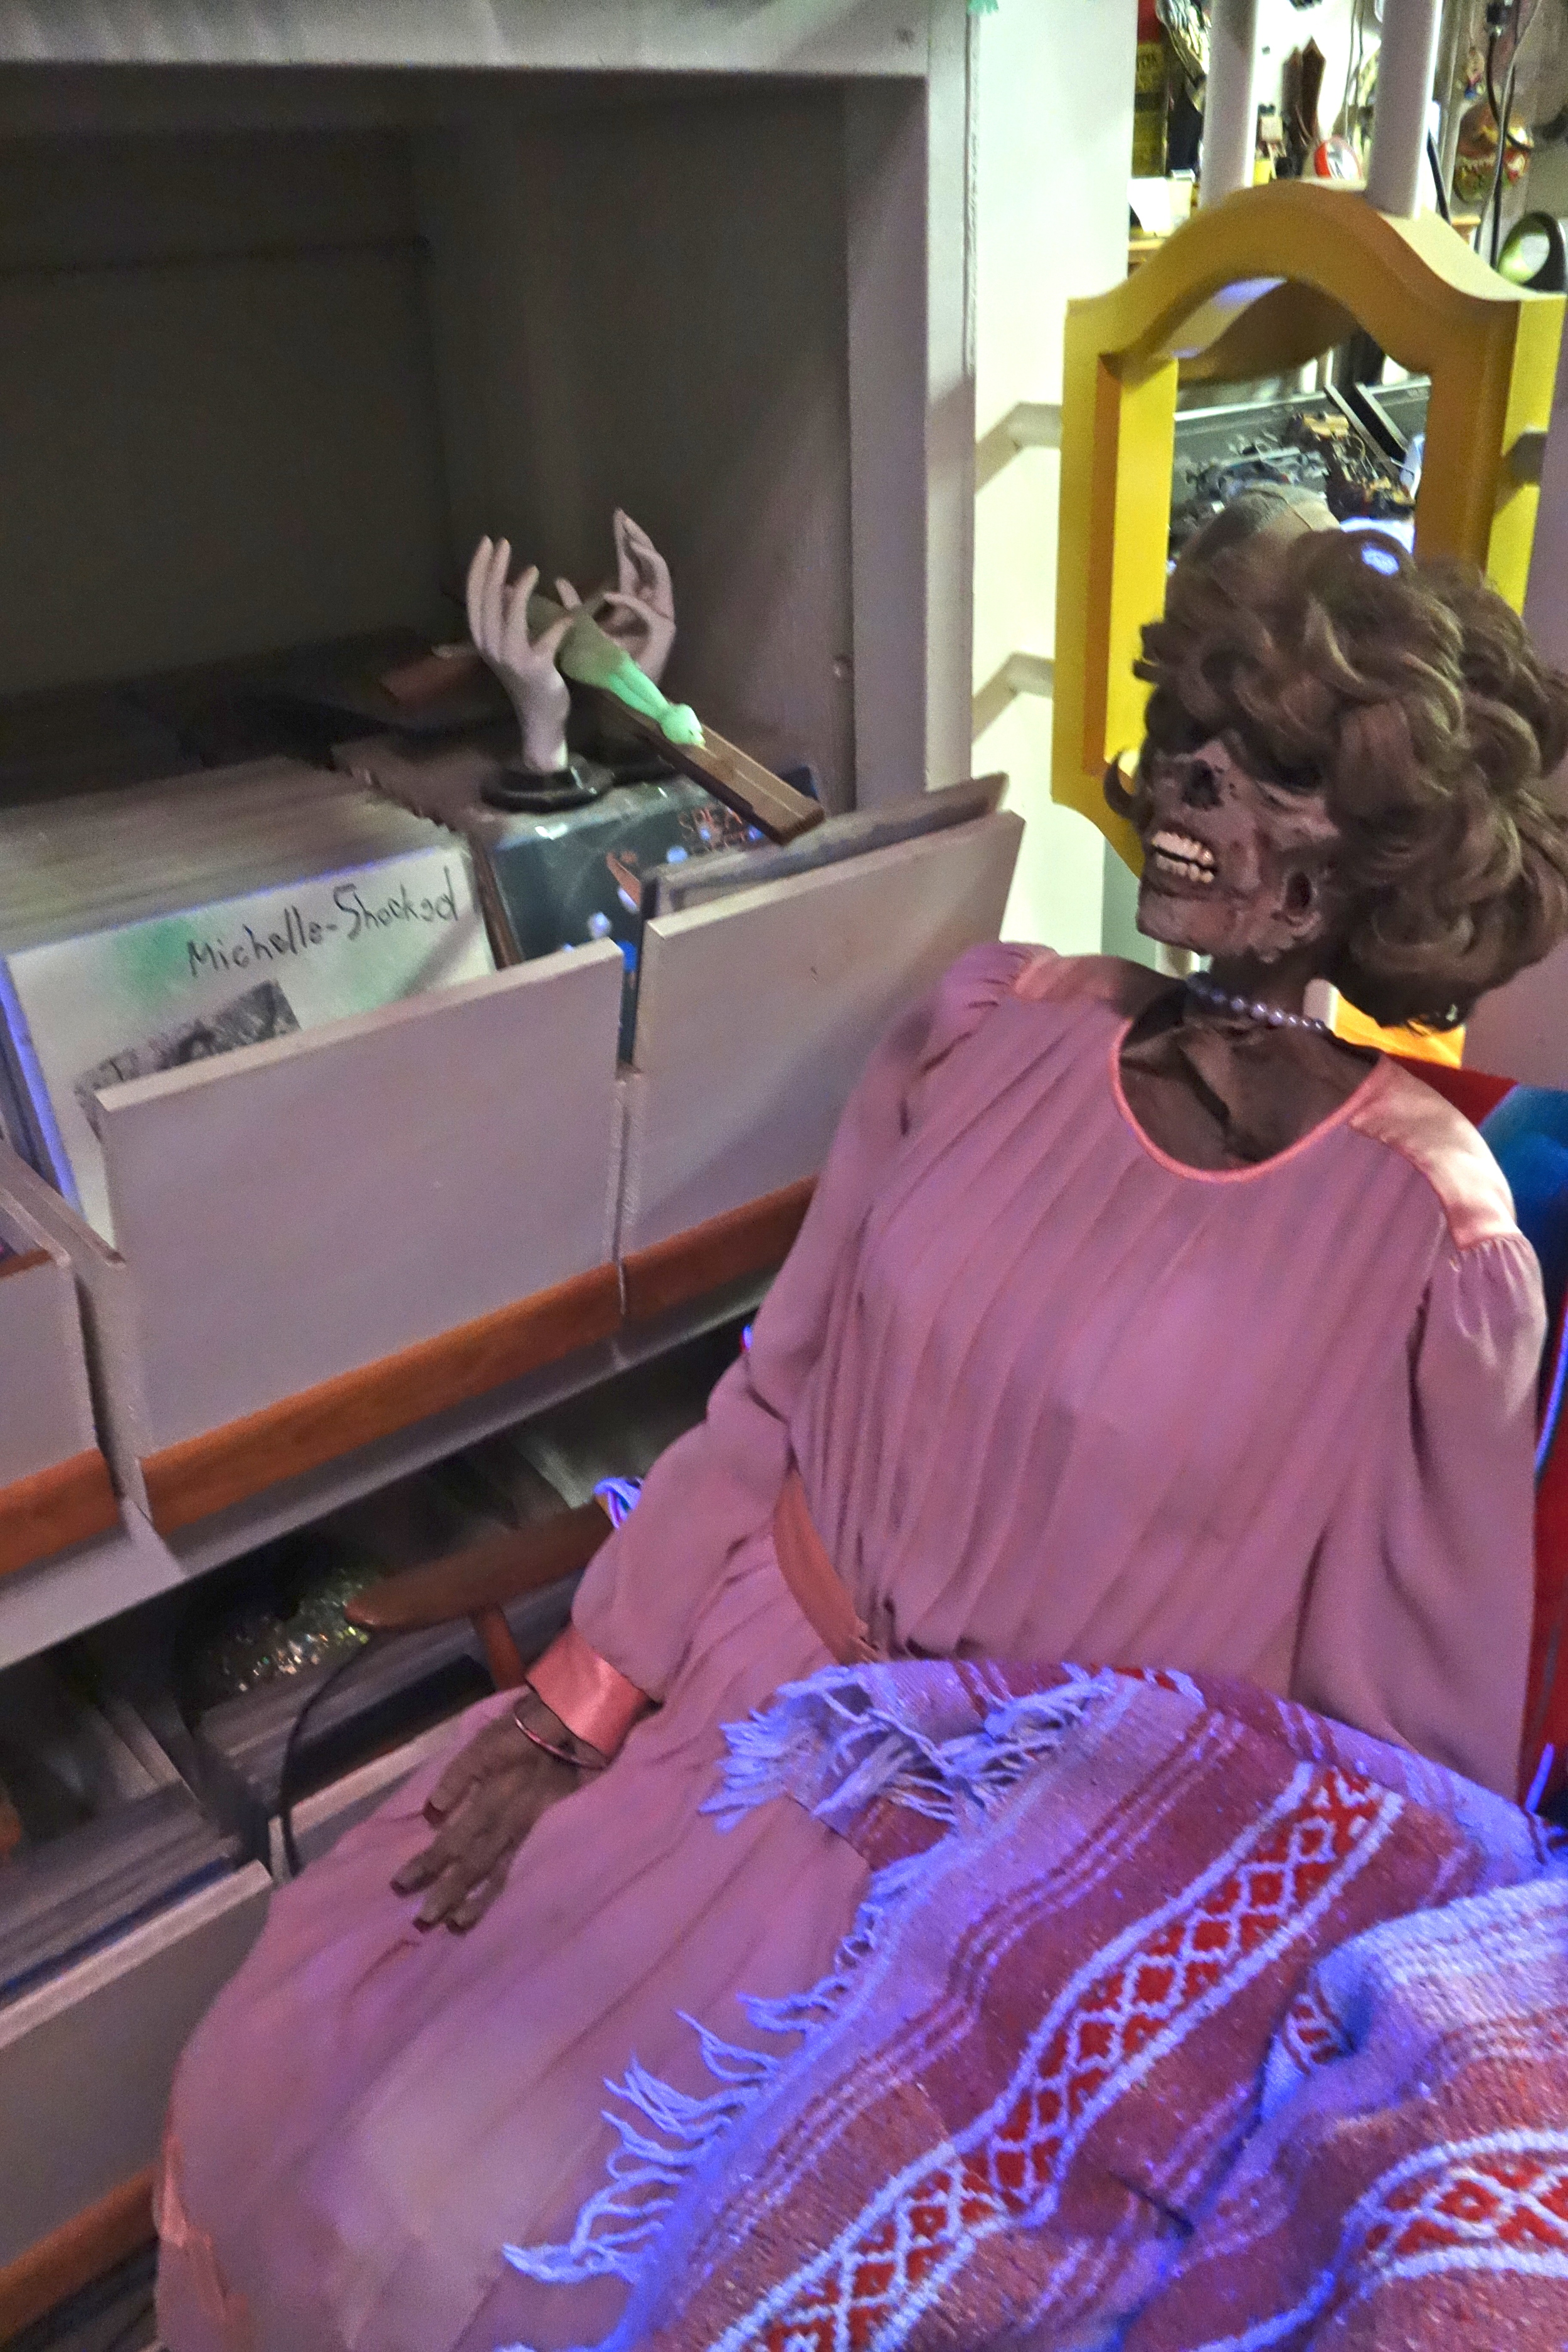 A zombie lady in a pink dress and pearls snuggles up on the sofa next to Rose impressive vinyl collection.